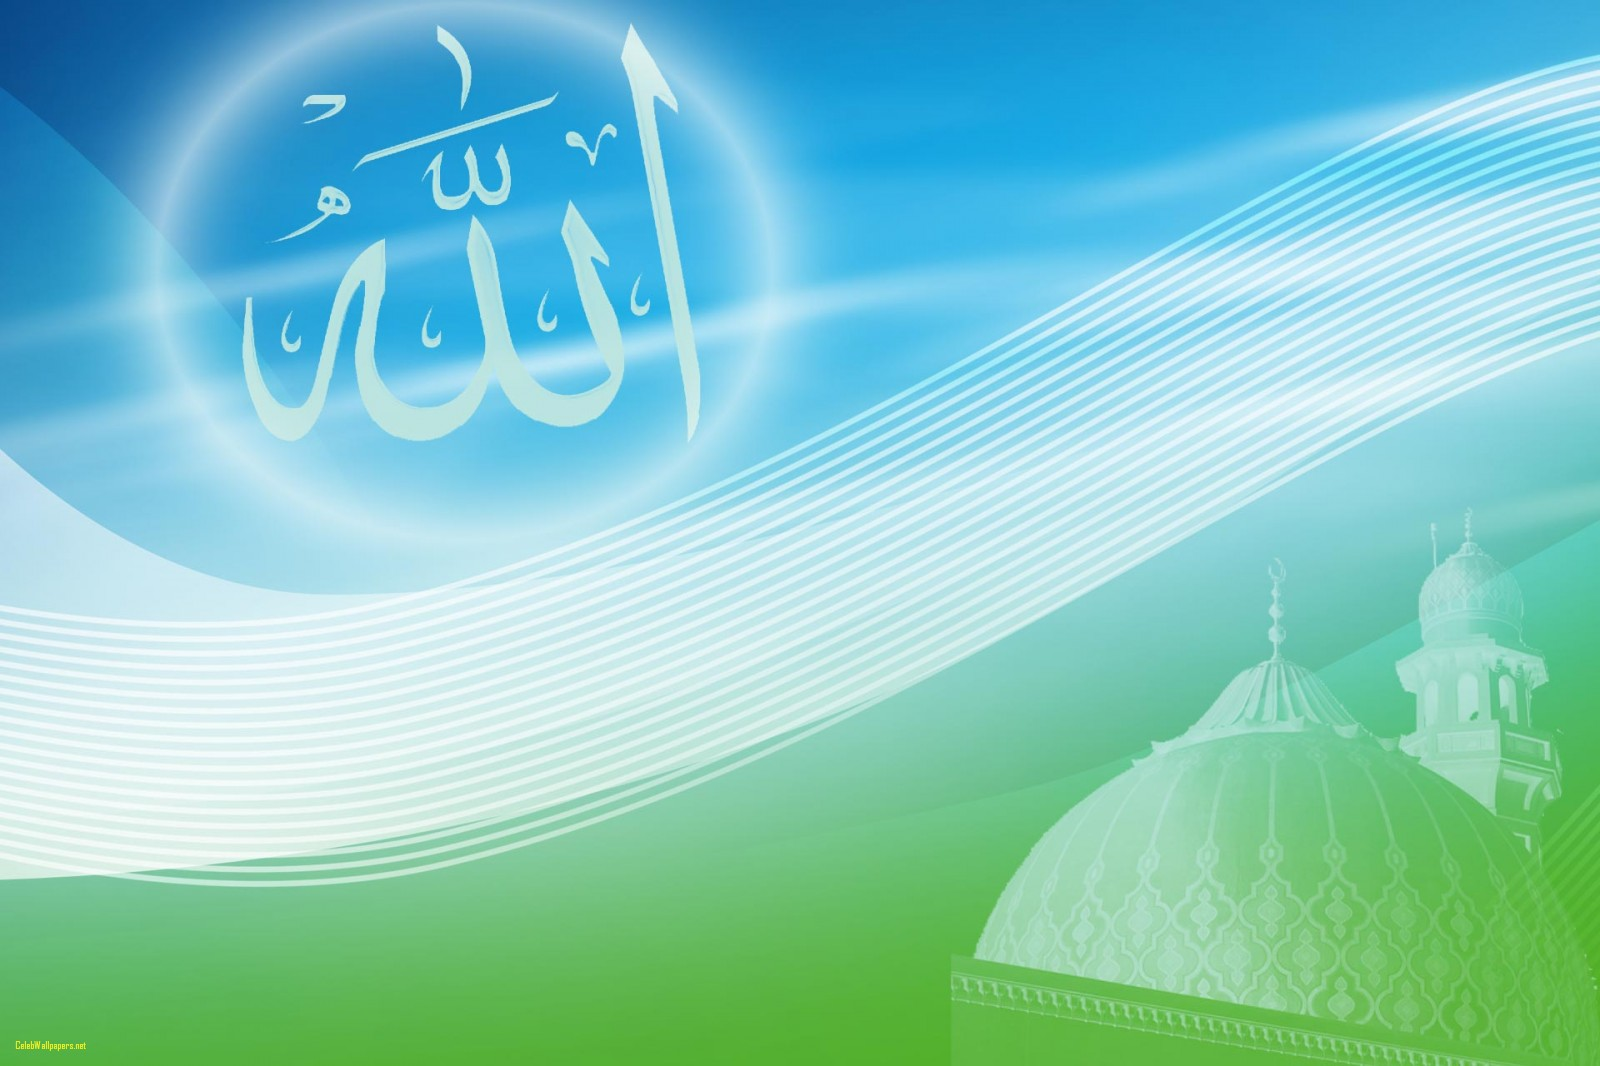 Samsung Note 3 Islamic Wallpaper 2 Free Islamic Apps  Awesome Islamic Wallpaper